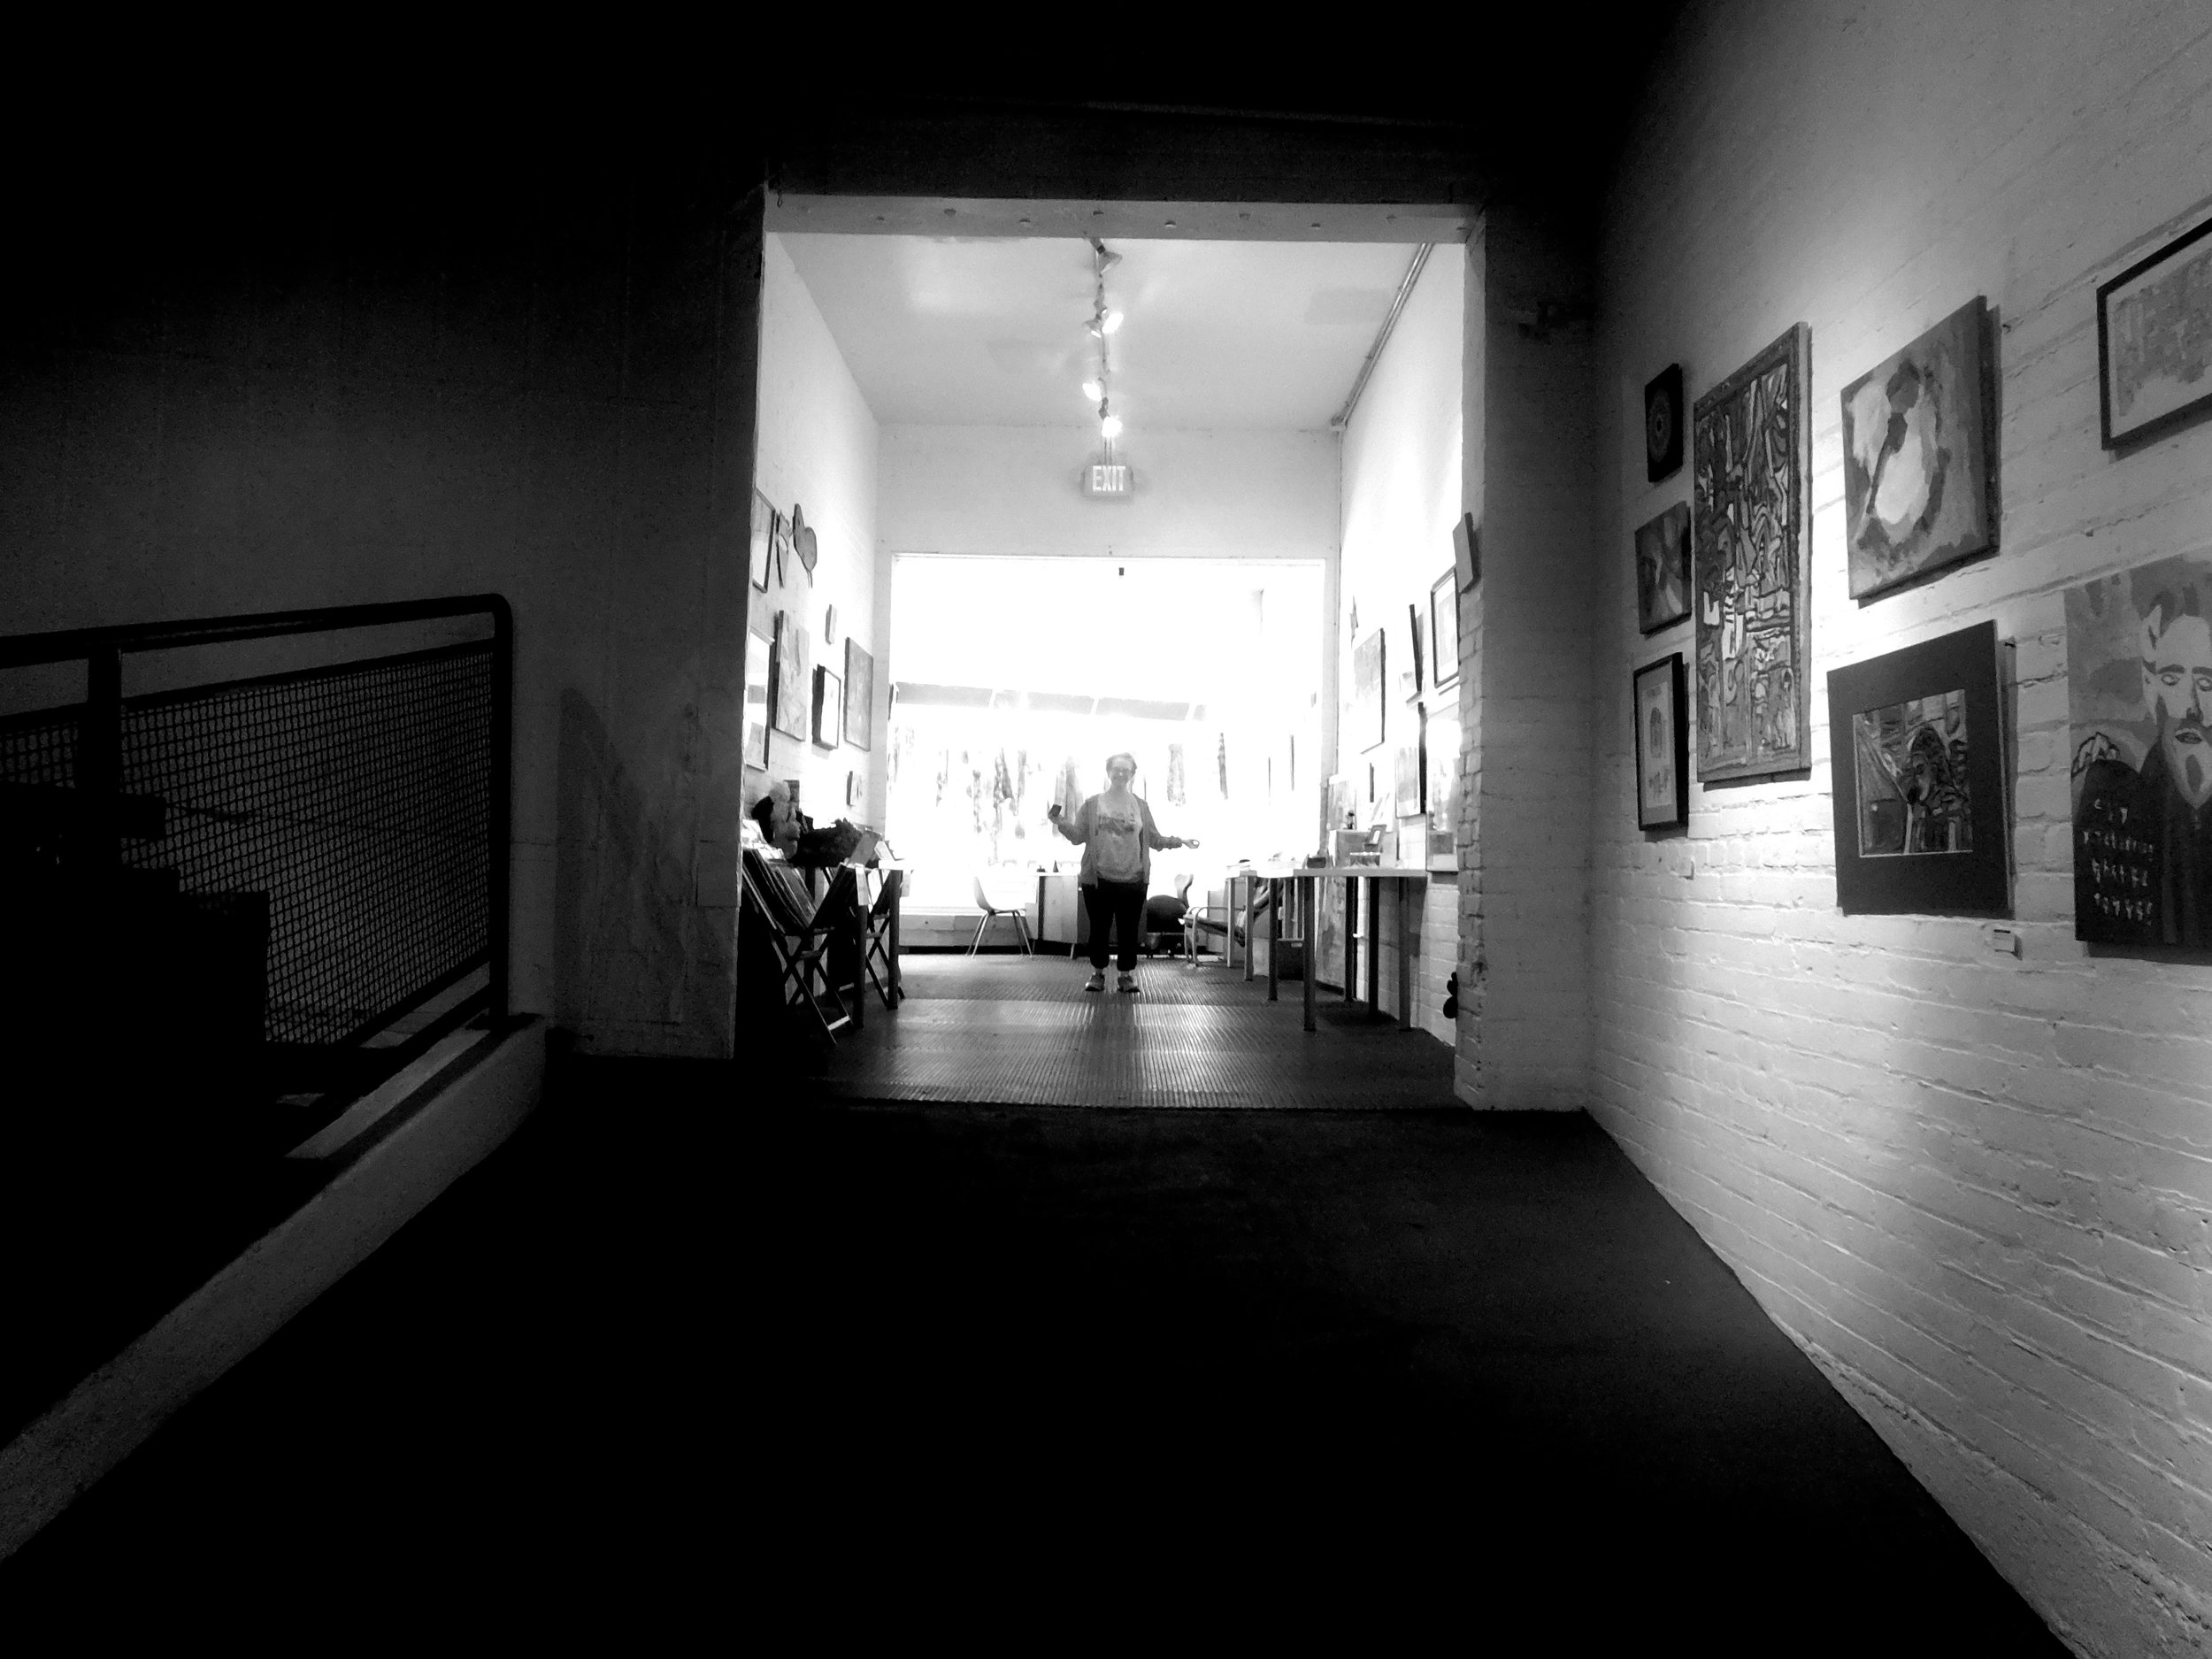 A black and white image of a person standing at the end of a hall. The photograph has stark contrast with very dark foreground, and overexposed background.